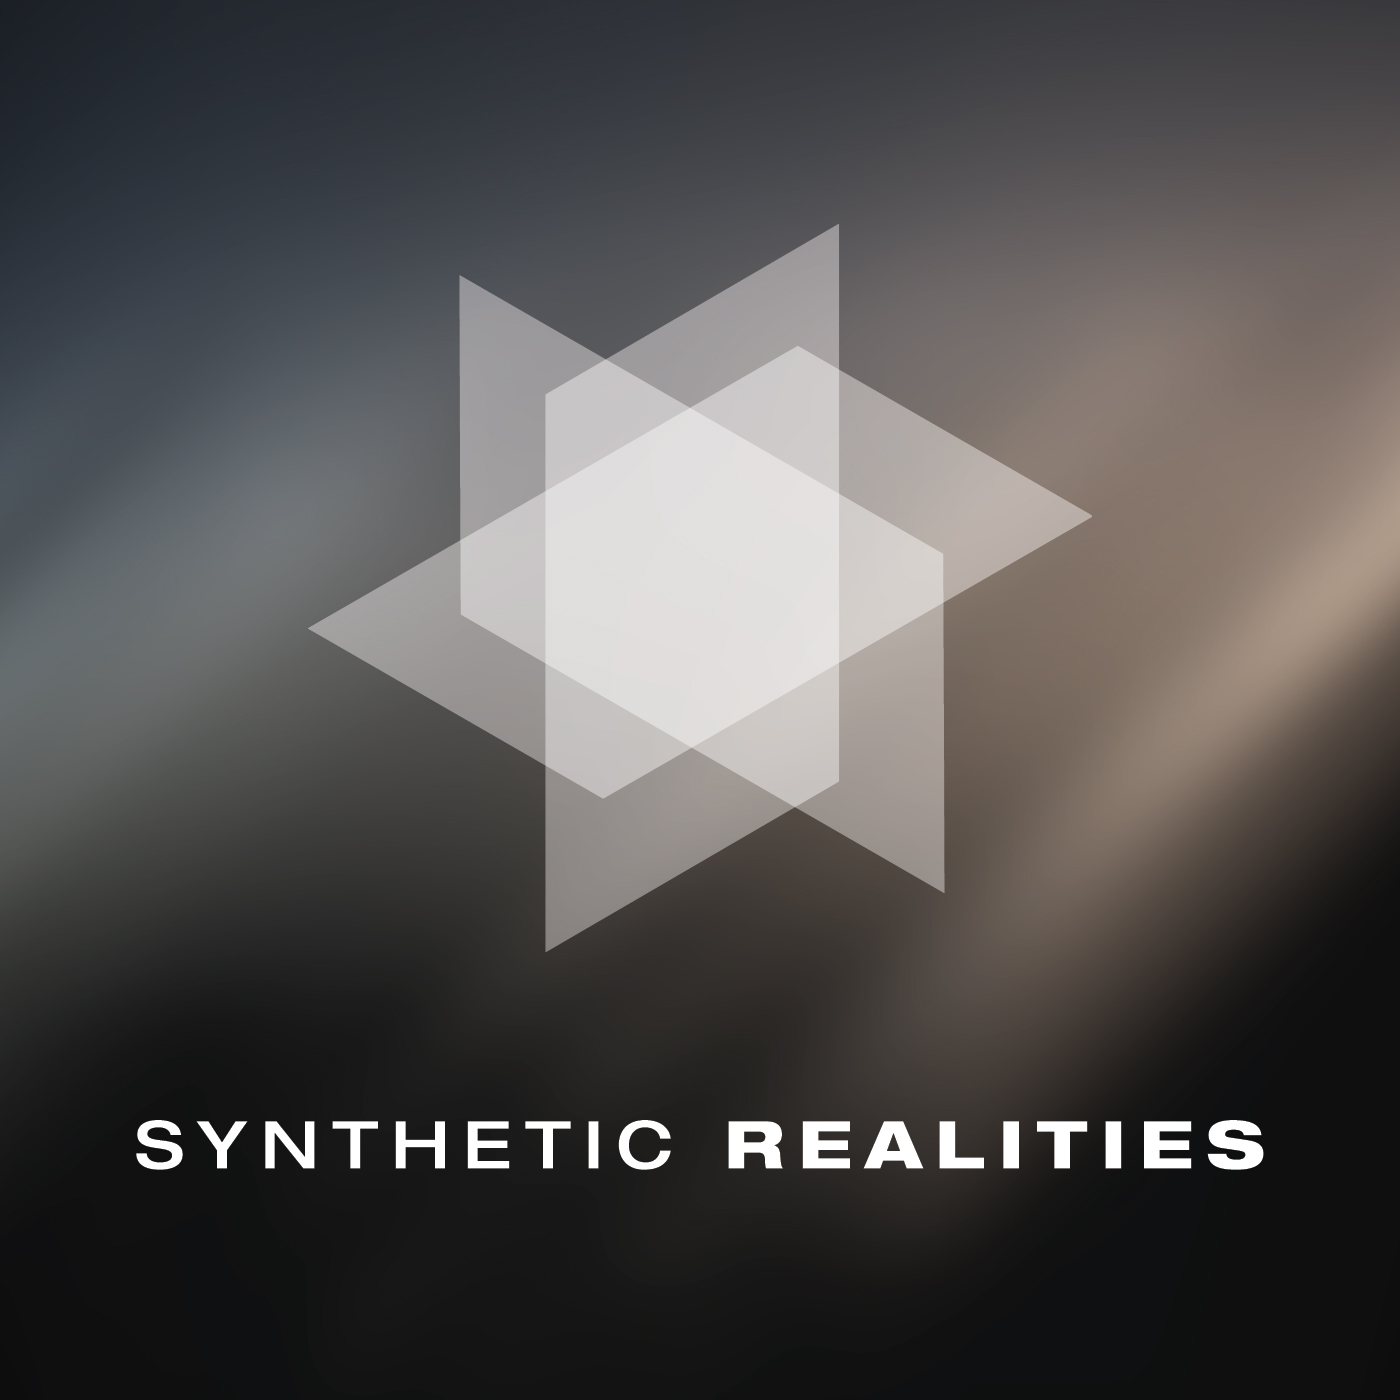 Synthetic Realities